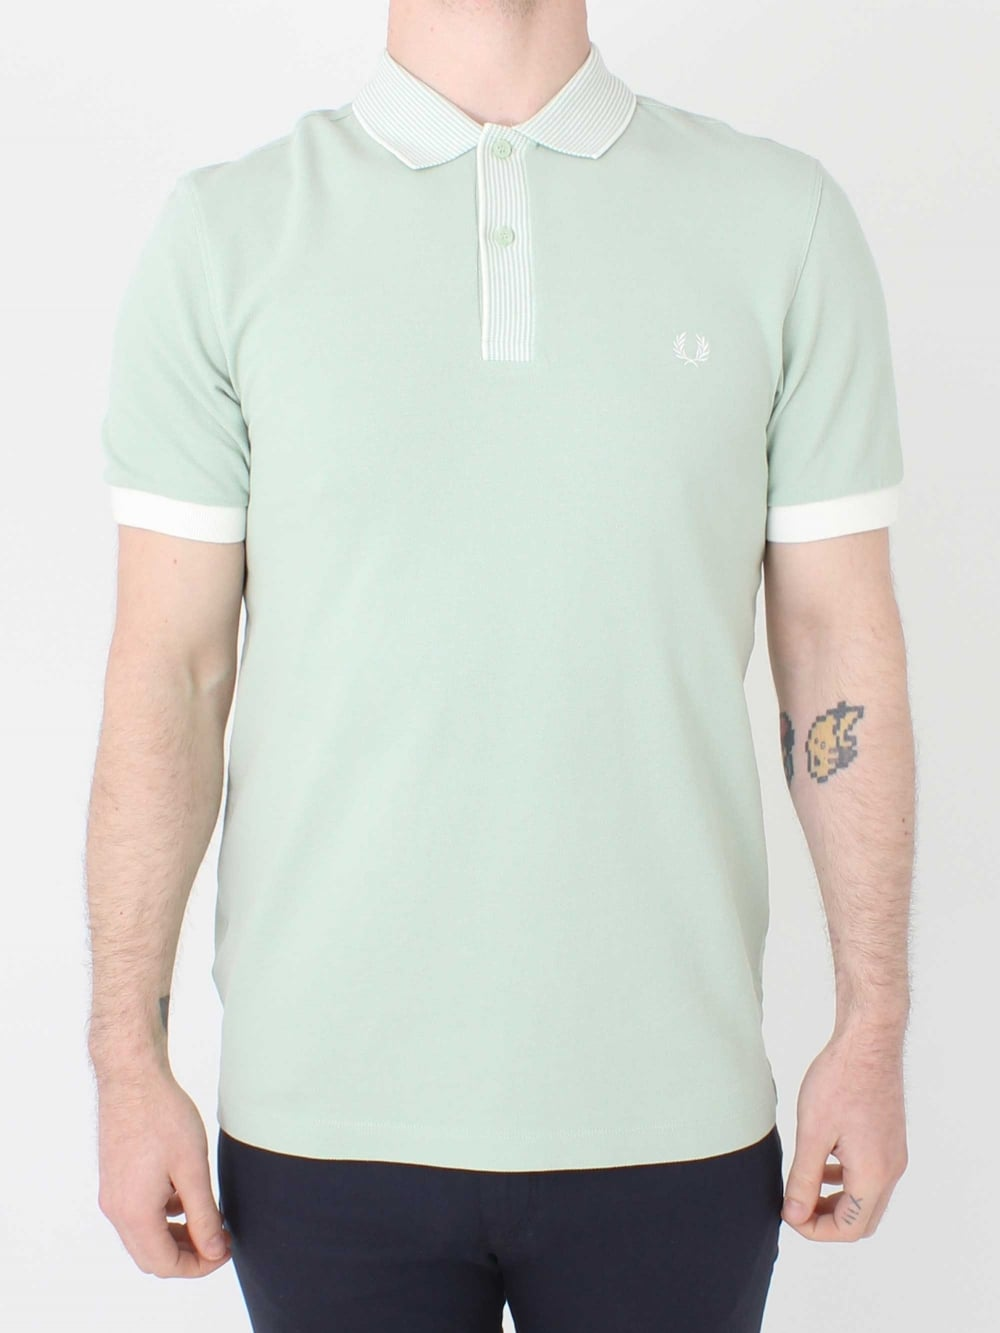 2d6c006b50 Fred Perry Stripe Collar Pique Shirt in Mint